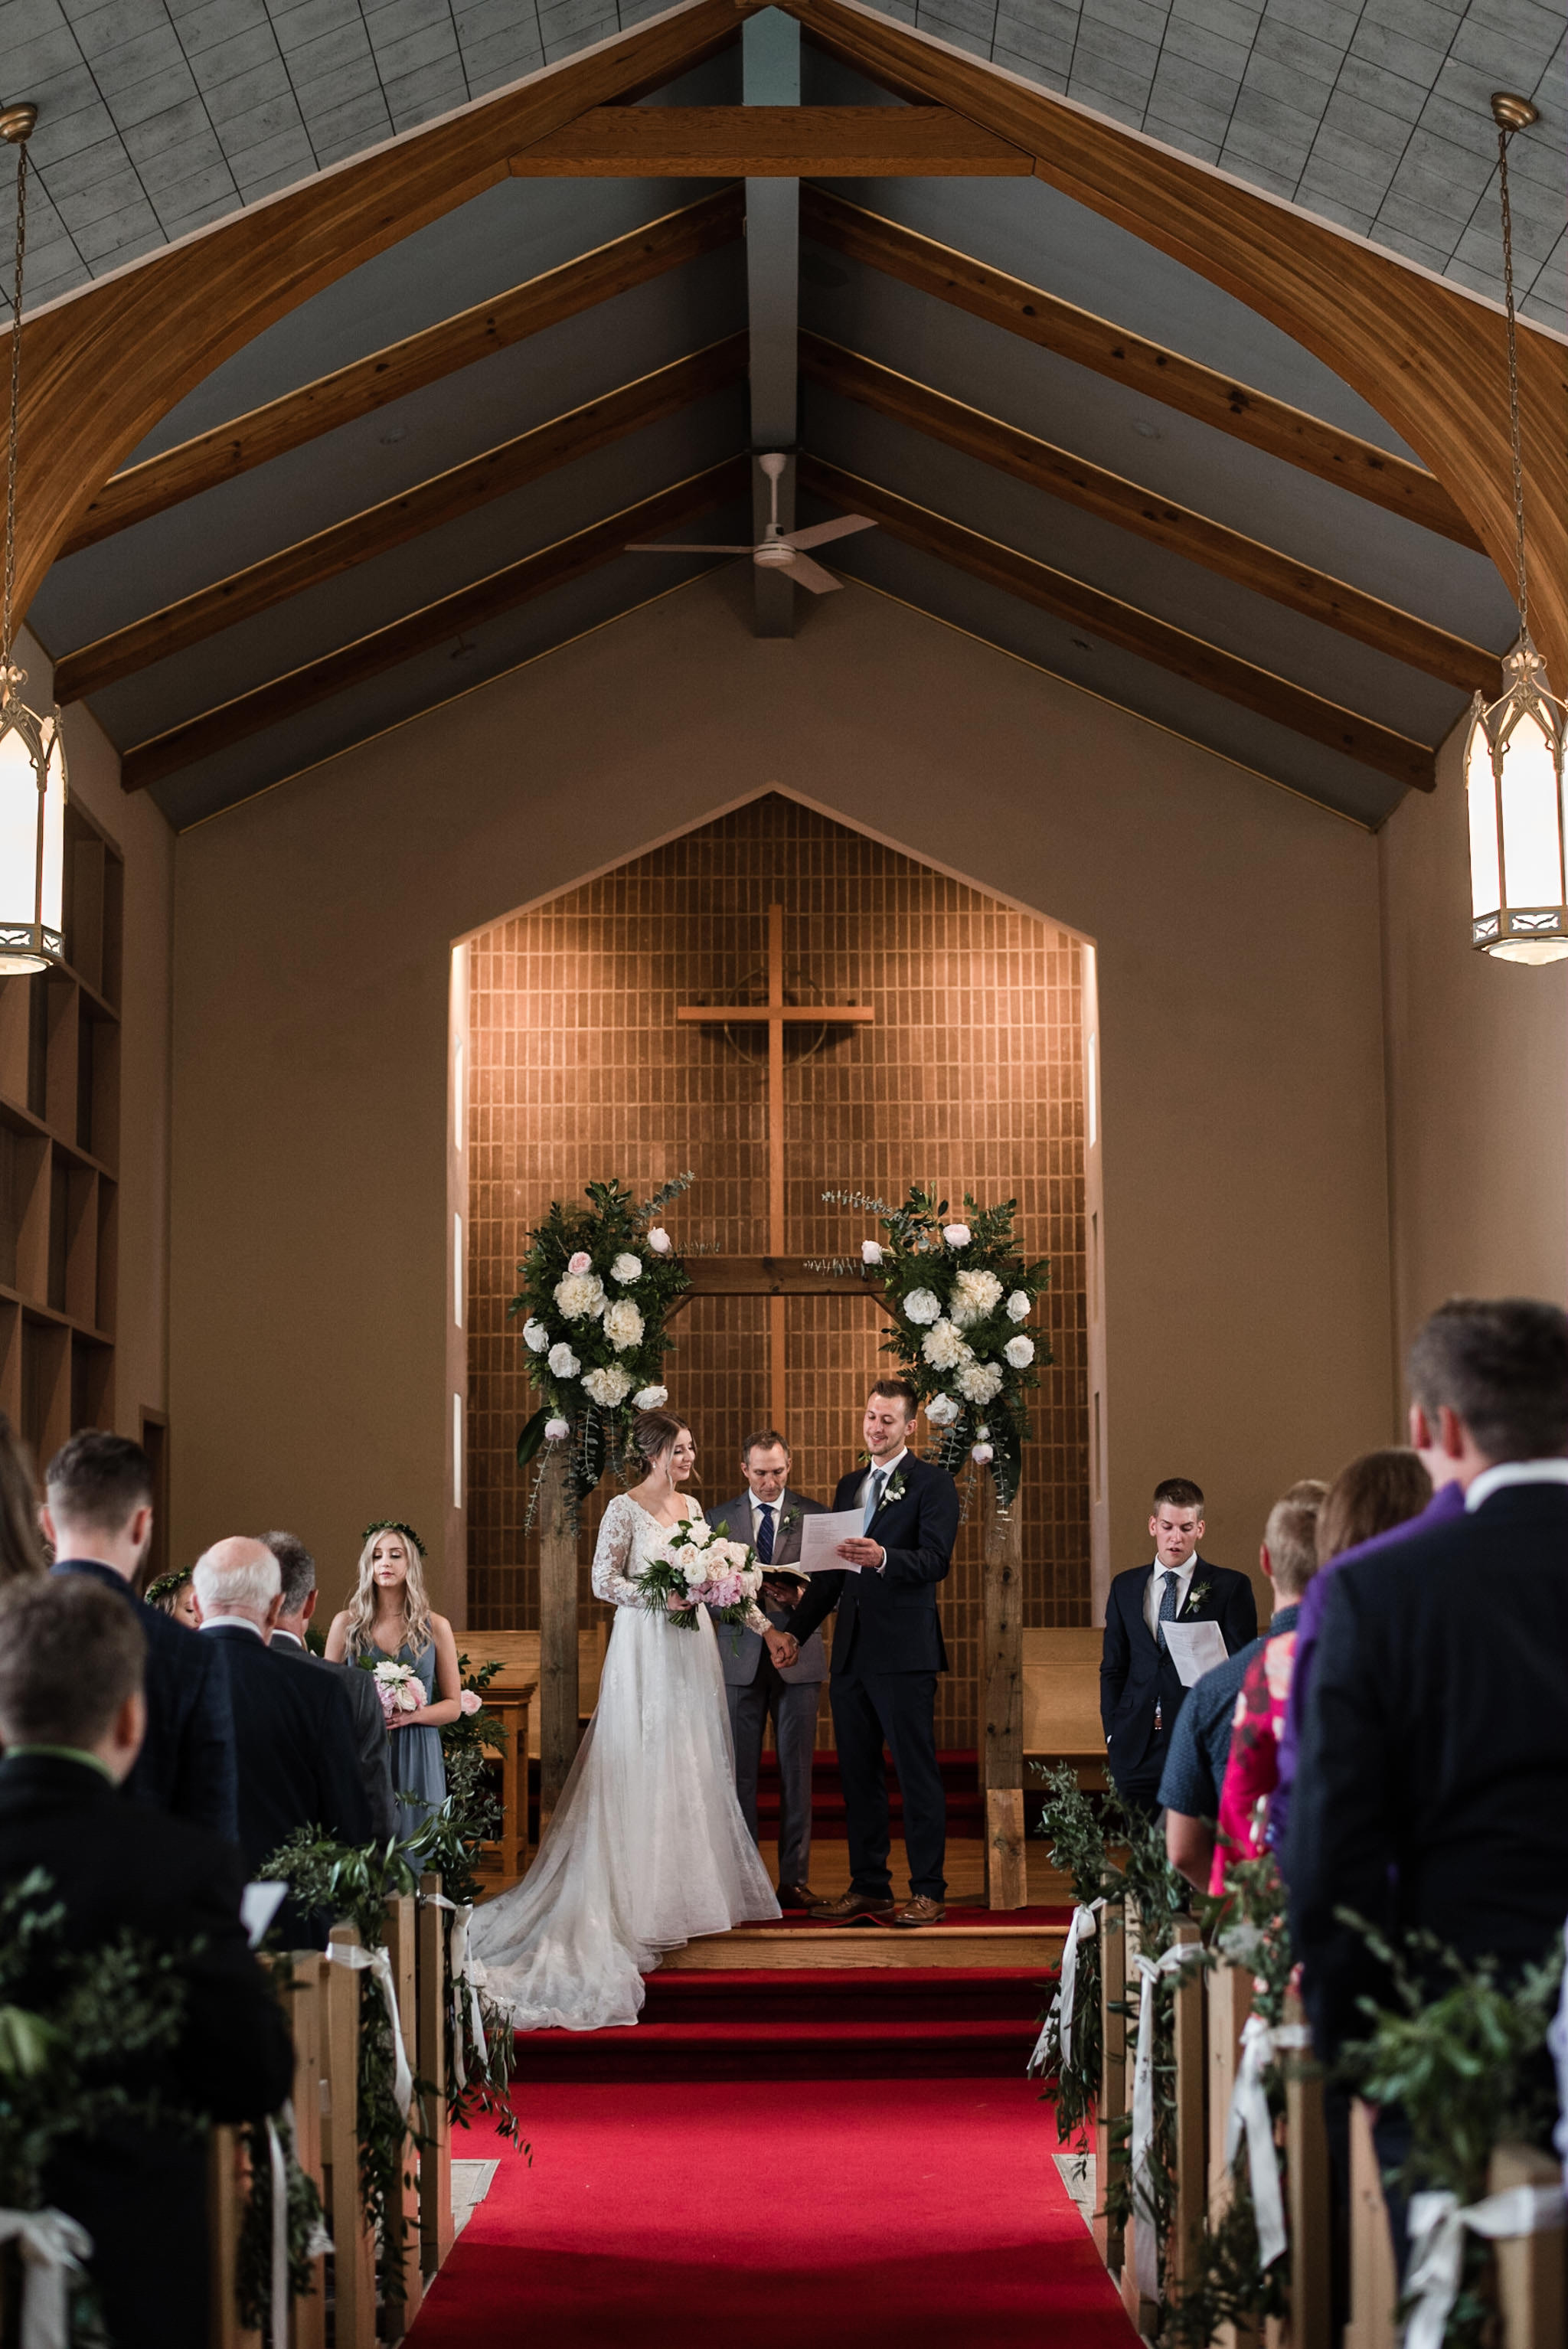 186-bride-groom-worship-toronto-church-wooden-arch-flowers.jpg